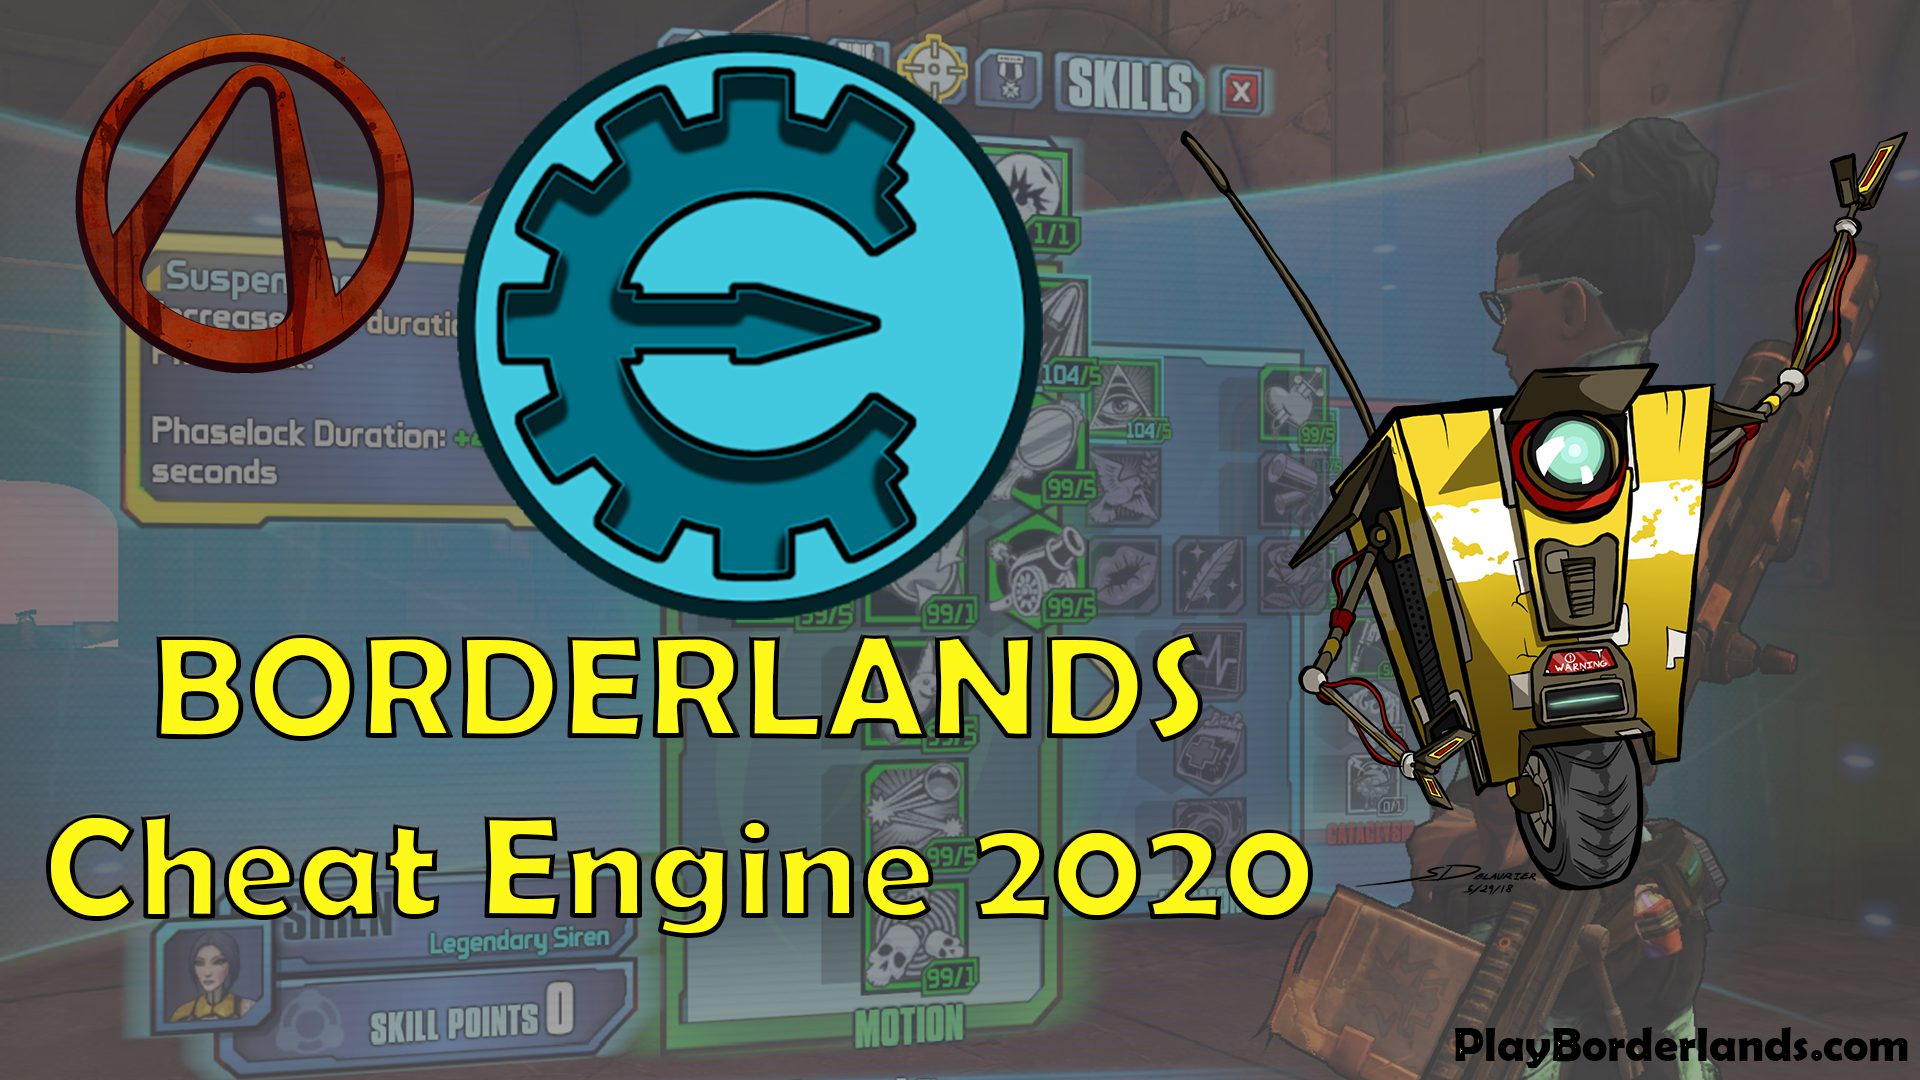 Play Borderlands Cheat engine